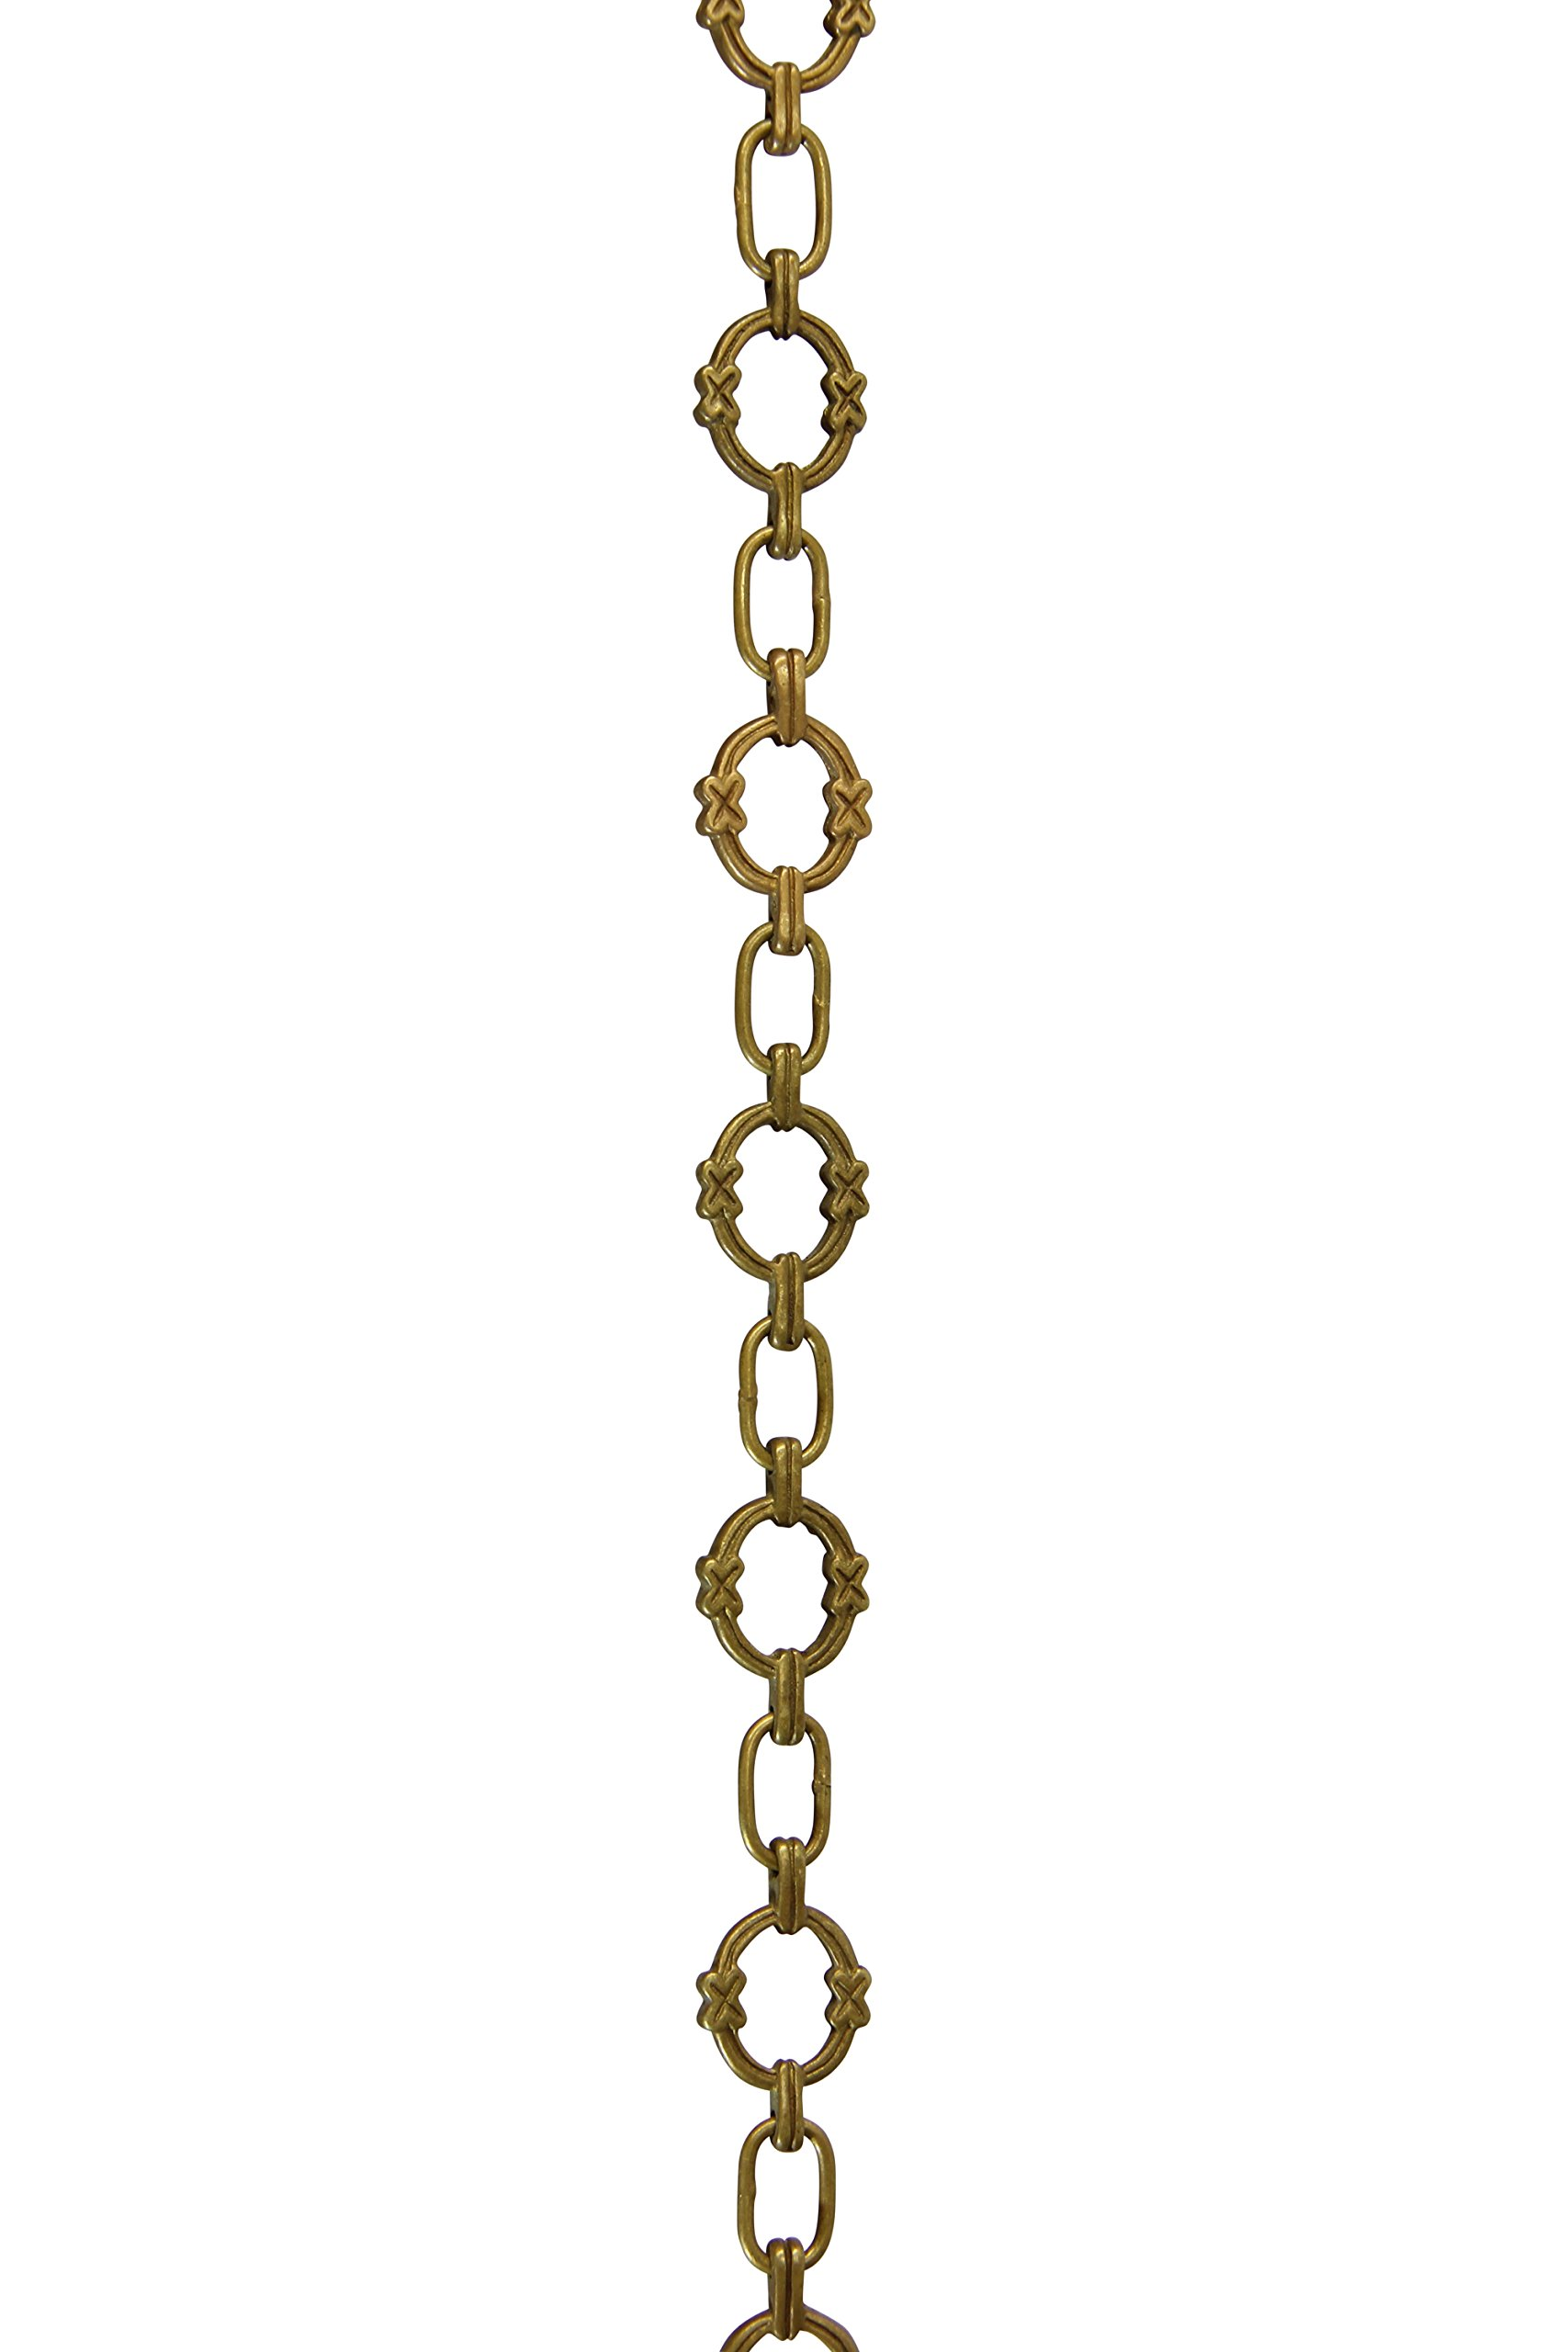 RCH Hardware CH-05-AB Solid Brass Chain for Hanging, Lighting, Antique